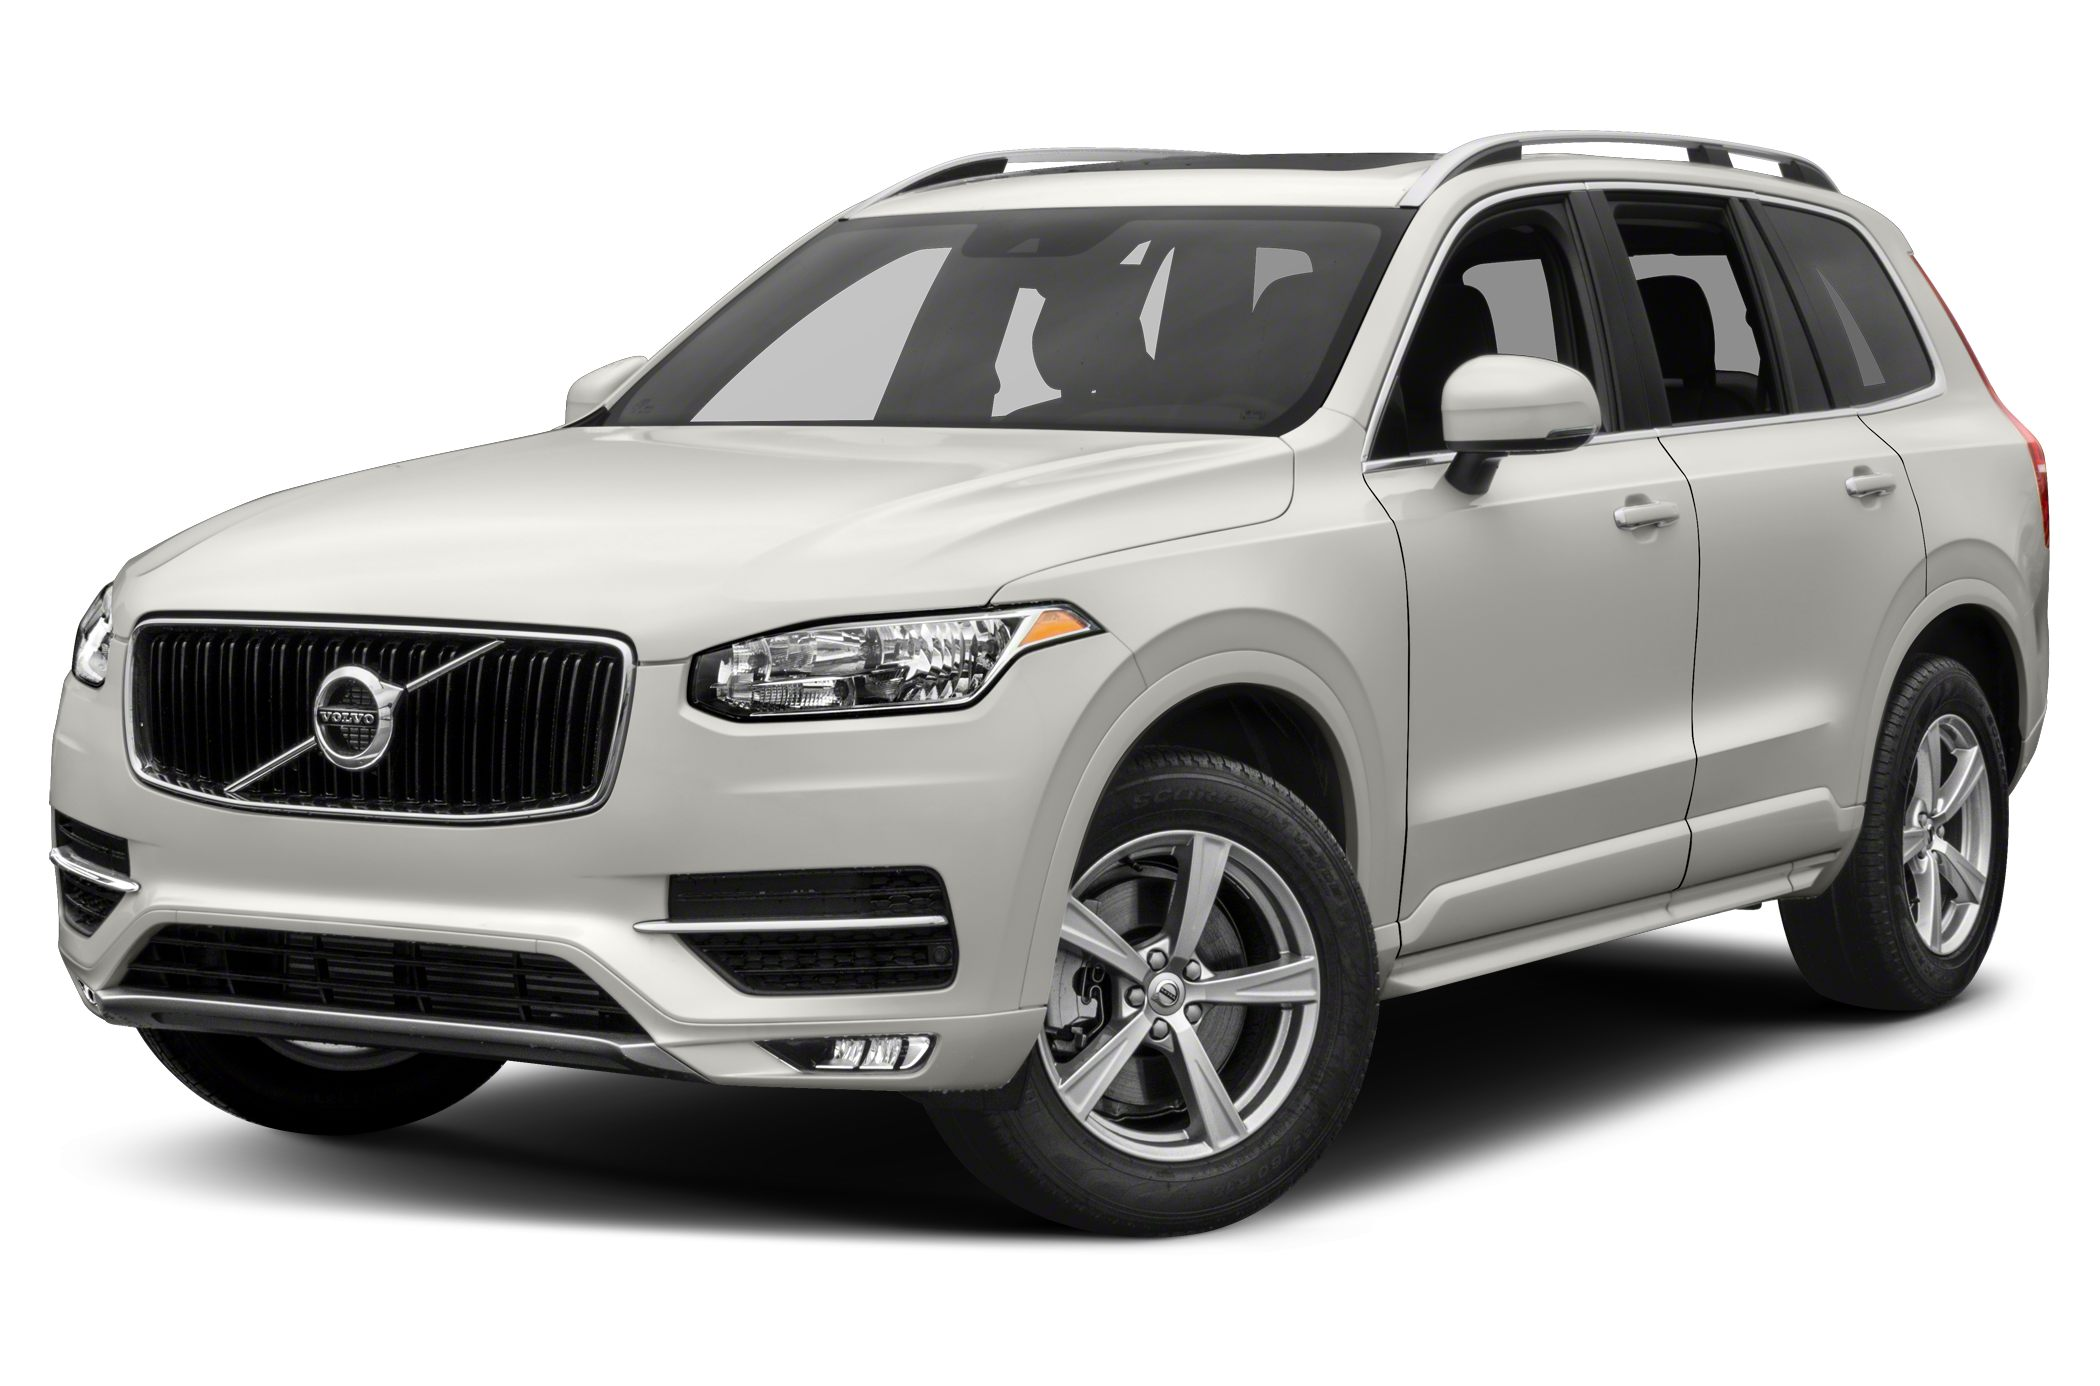 Volvo Xc90 Commercial >> Volvo XC90 News, Photos and Buying Information - Autoblog